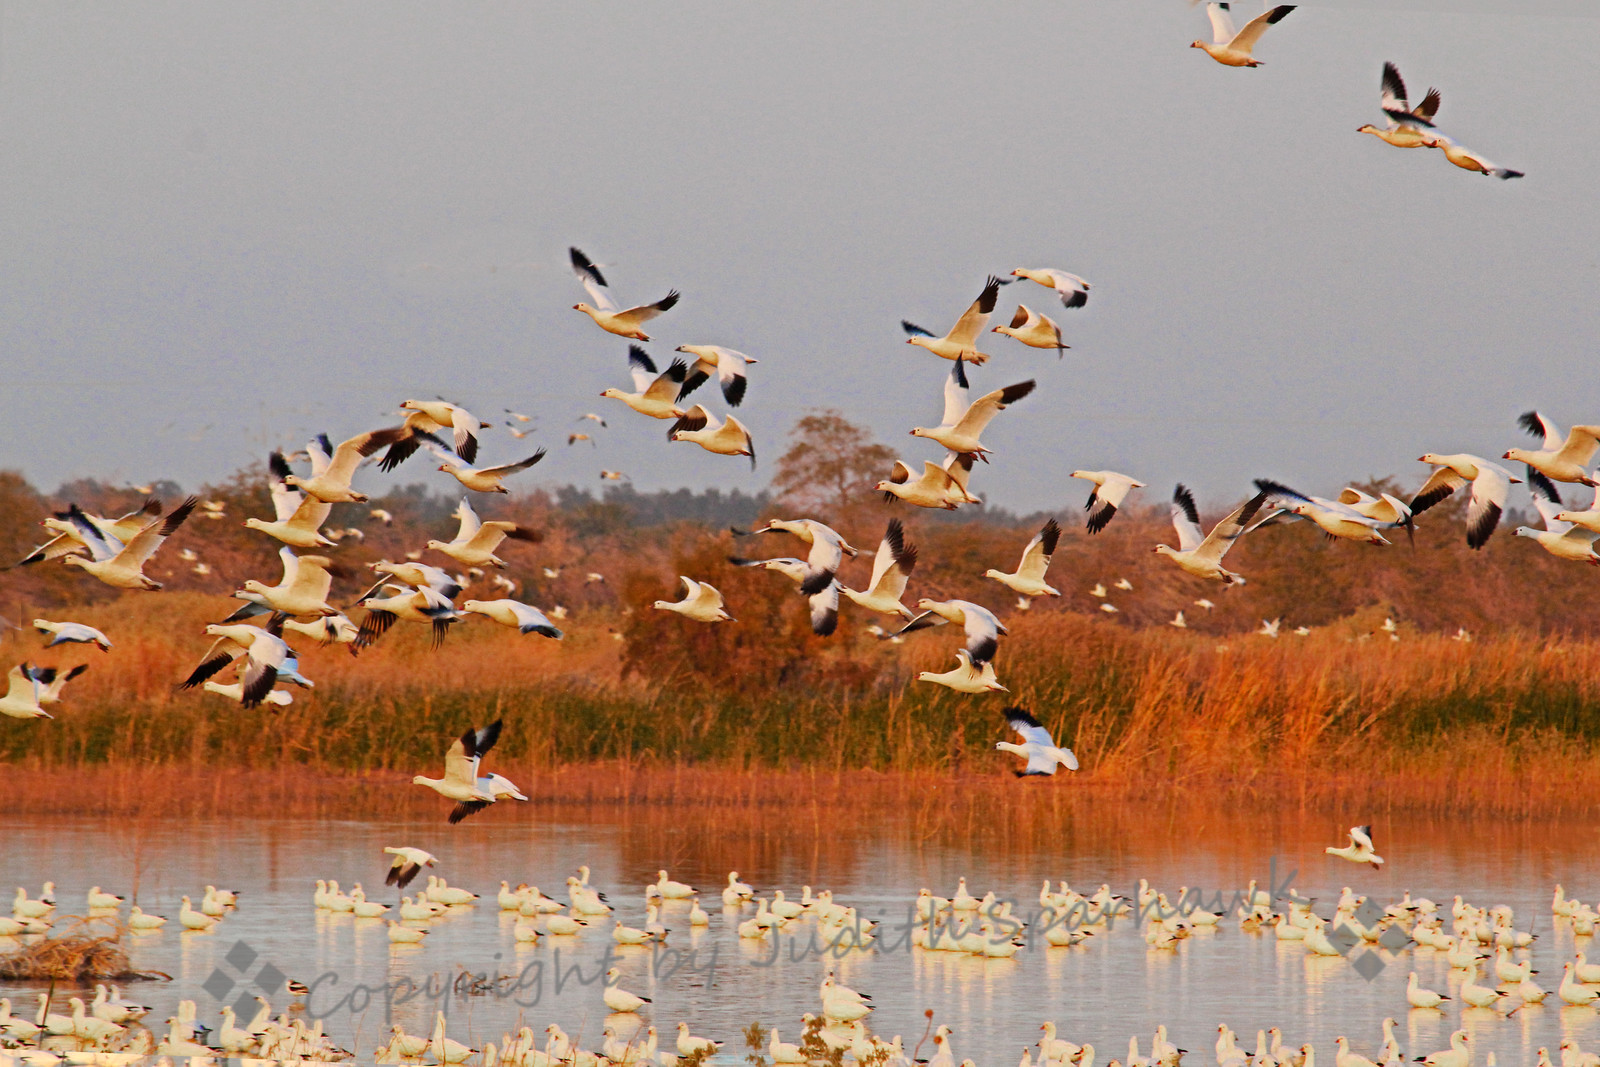 Dawn Flight of Geese ~ In the warm light of dawn, hundreds of Snow Geese and Ross's Geese flew into the ponds near Salton Sea, to begin the day, before flying out to the grassy fields. They make an amazing vibration and sound with their wings and their calls.